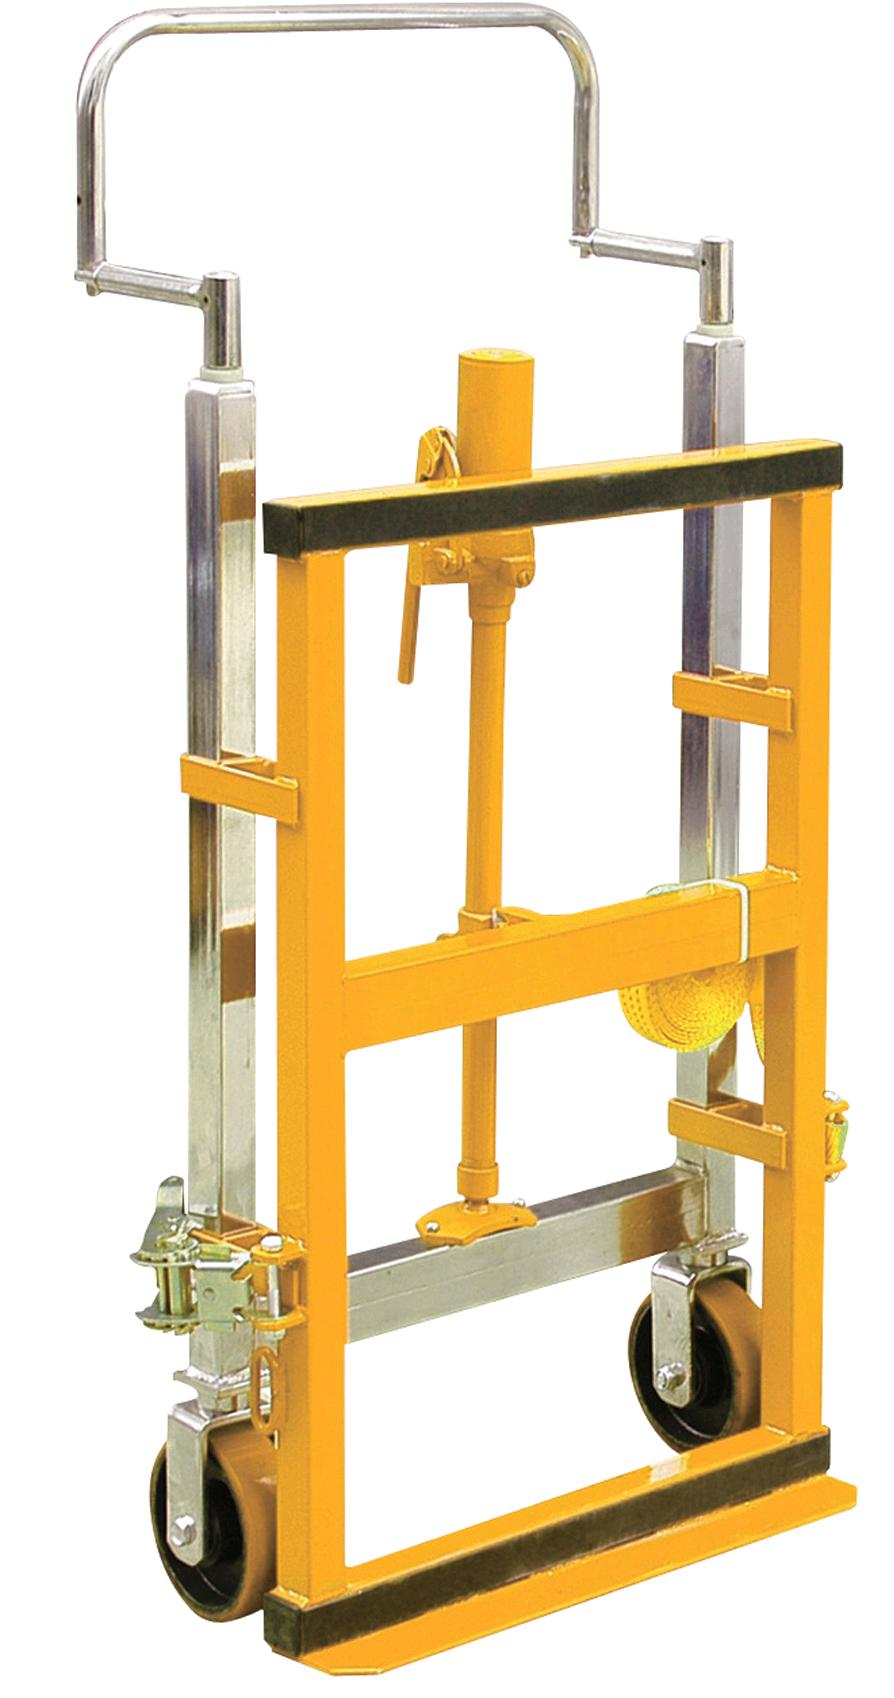 Anther Ladder george taylor & company : furniture movers fm180b